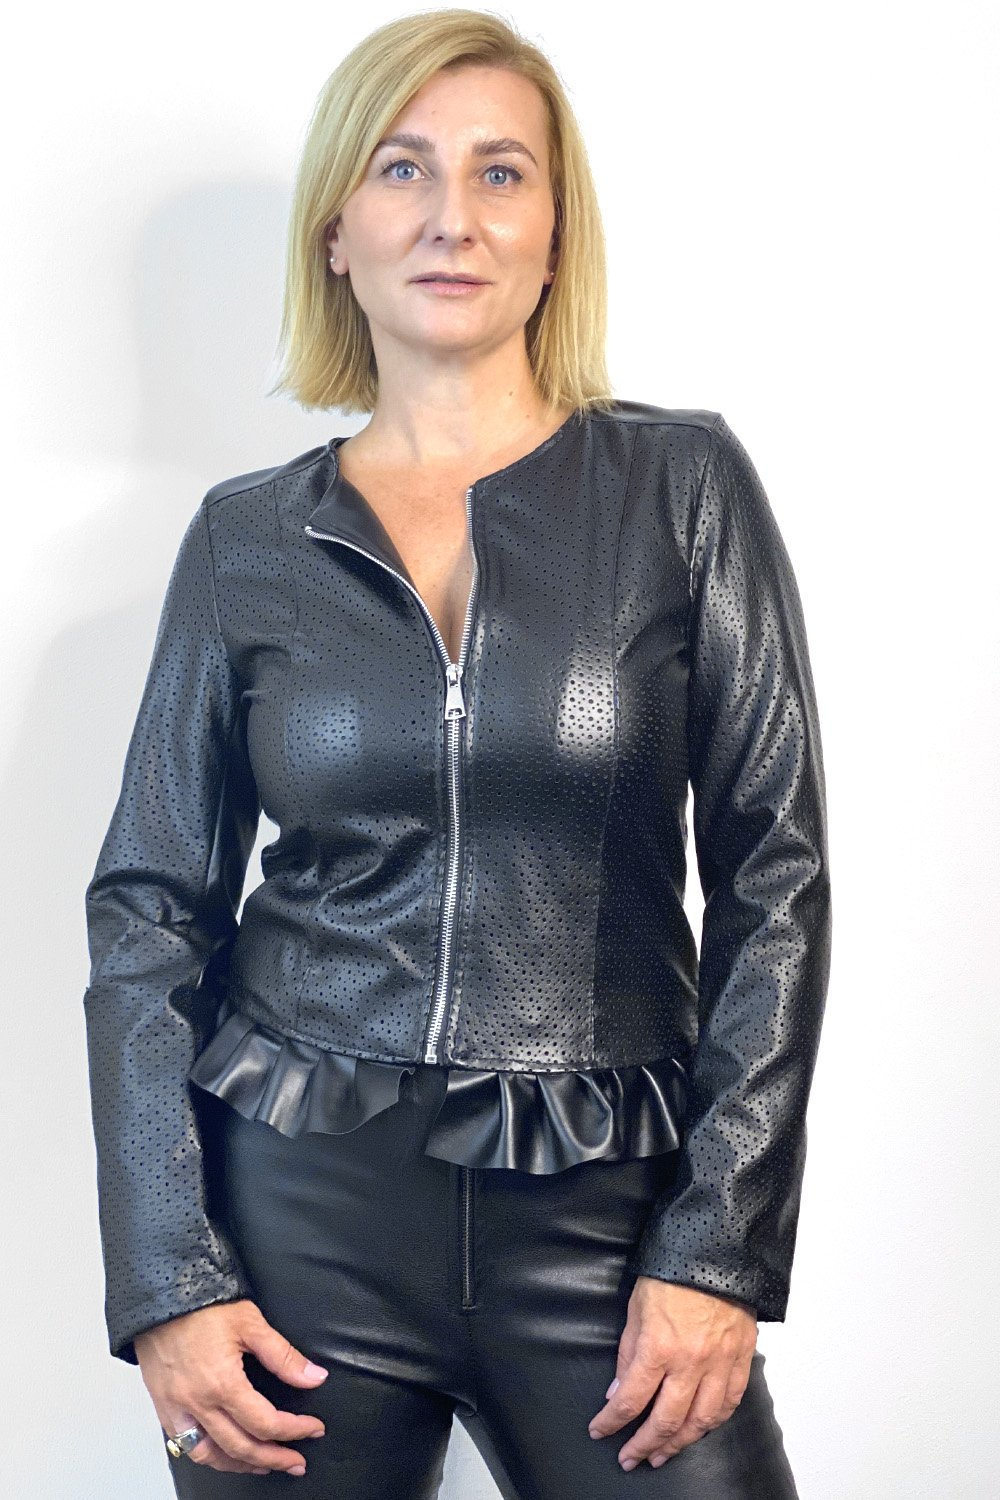 Faux-Leather Jacket Blacky - The Fashionboutique - Colloseum